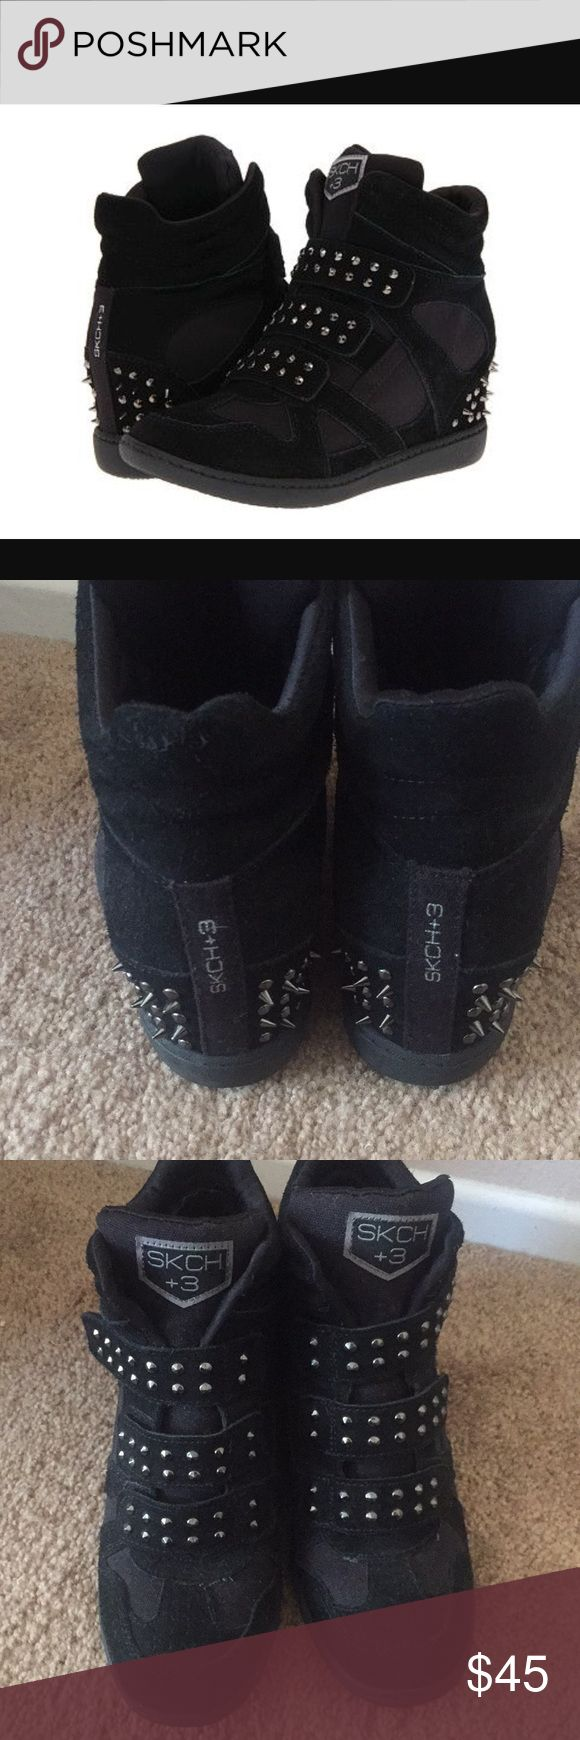 Skechers black wedge sneakers with spikes size 8 Like new retro Skechers black wedge sneakers with silver spikes on the heels and Velcro straps. In perfect condition, very comfortable. Wedge is about 3 inches. Size 8 Skechers Shoes Sneakers